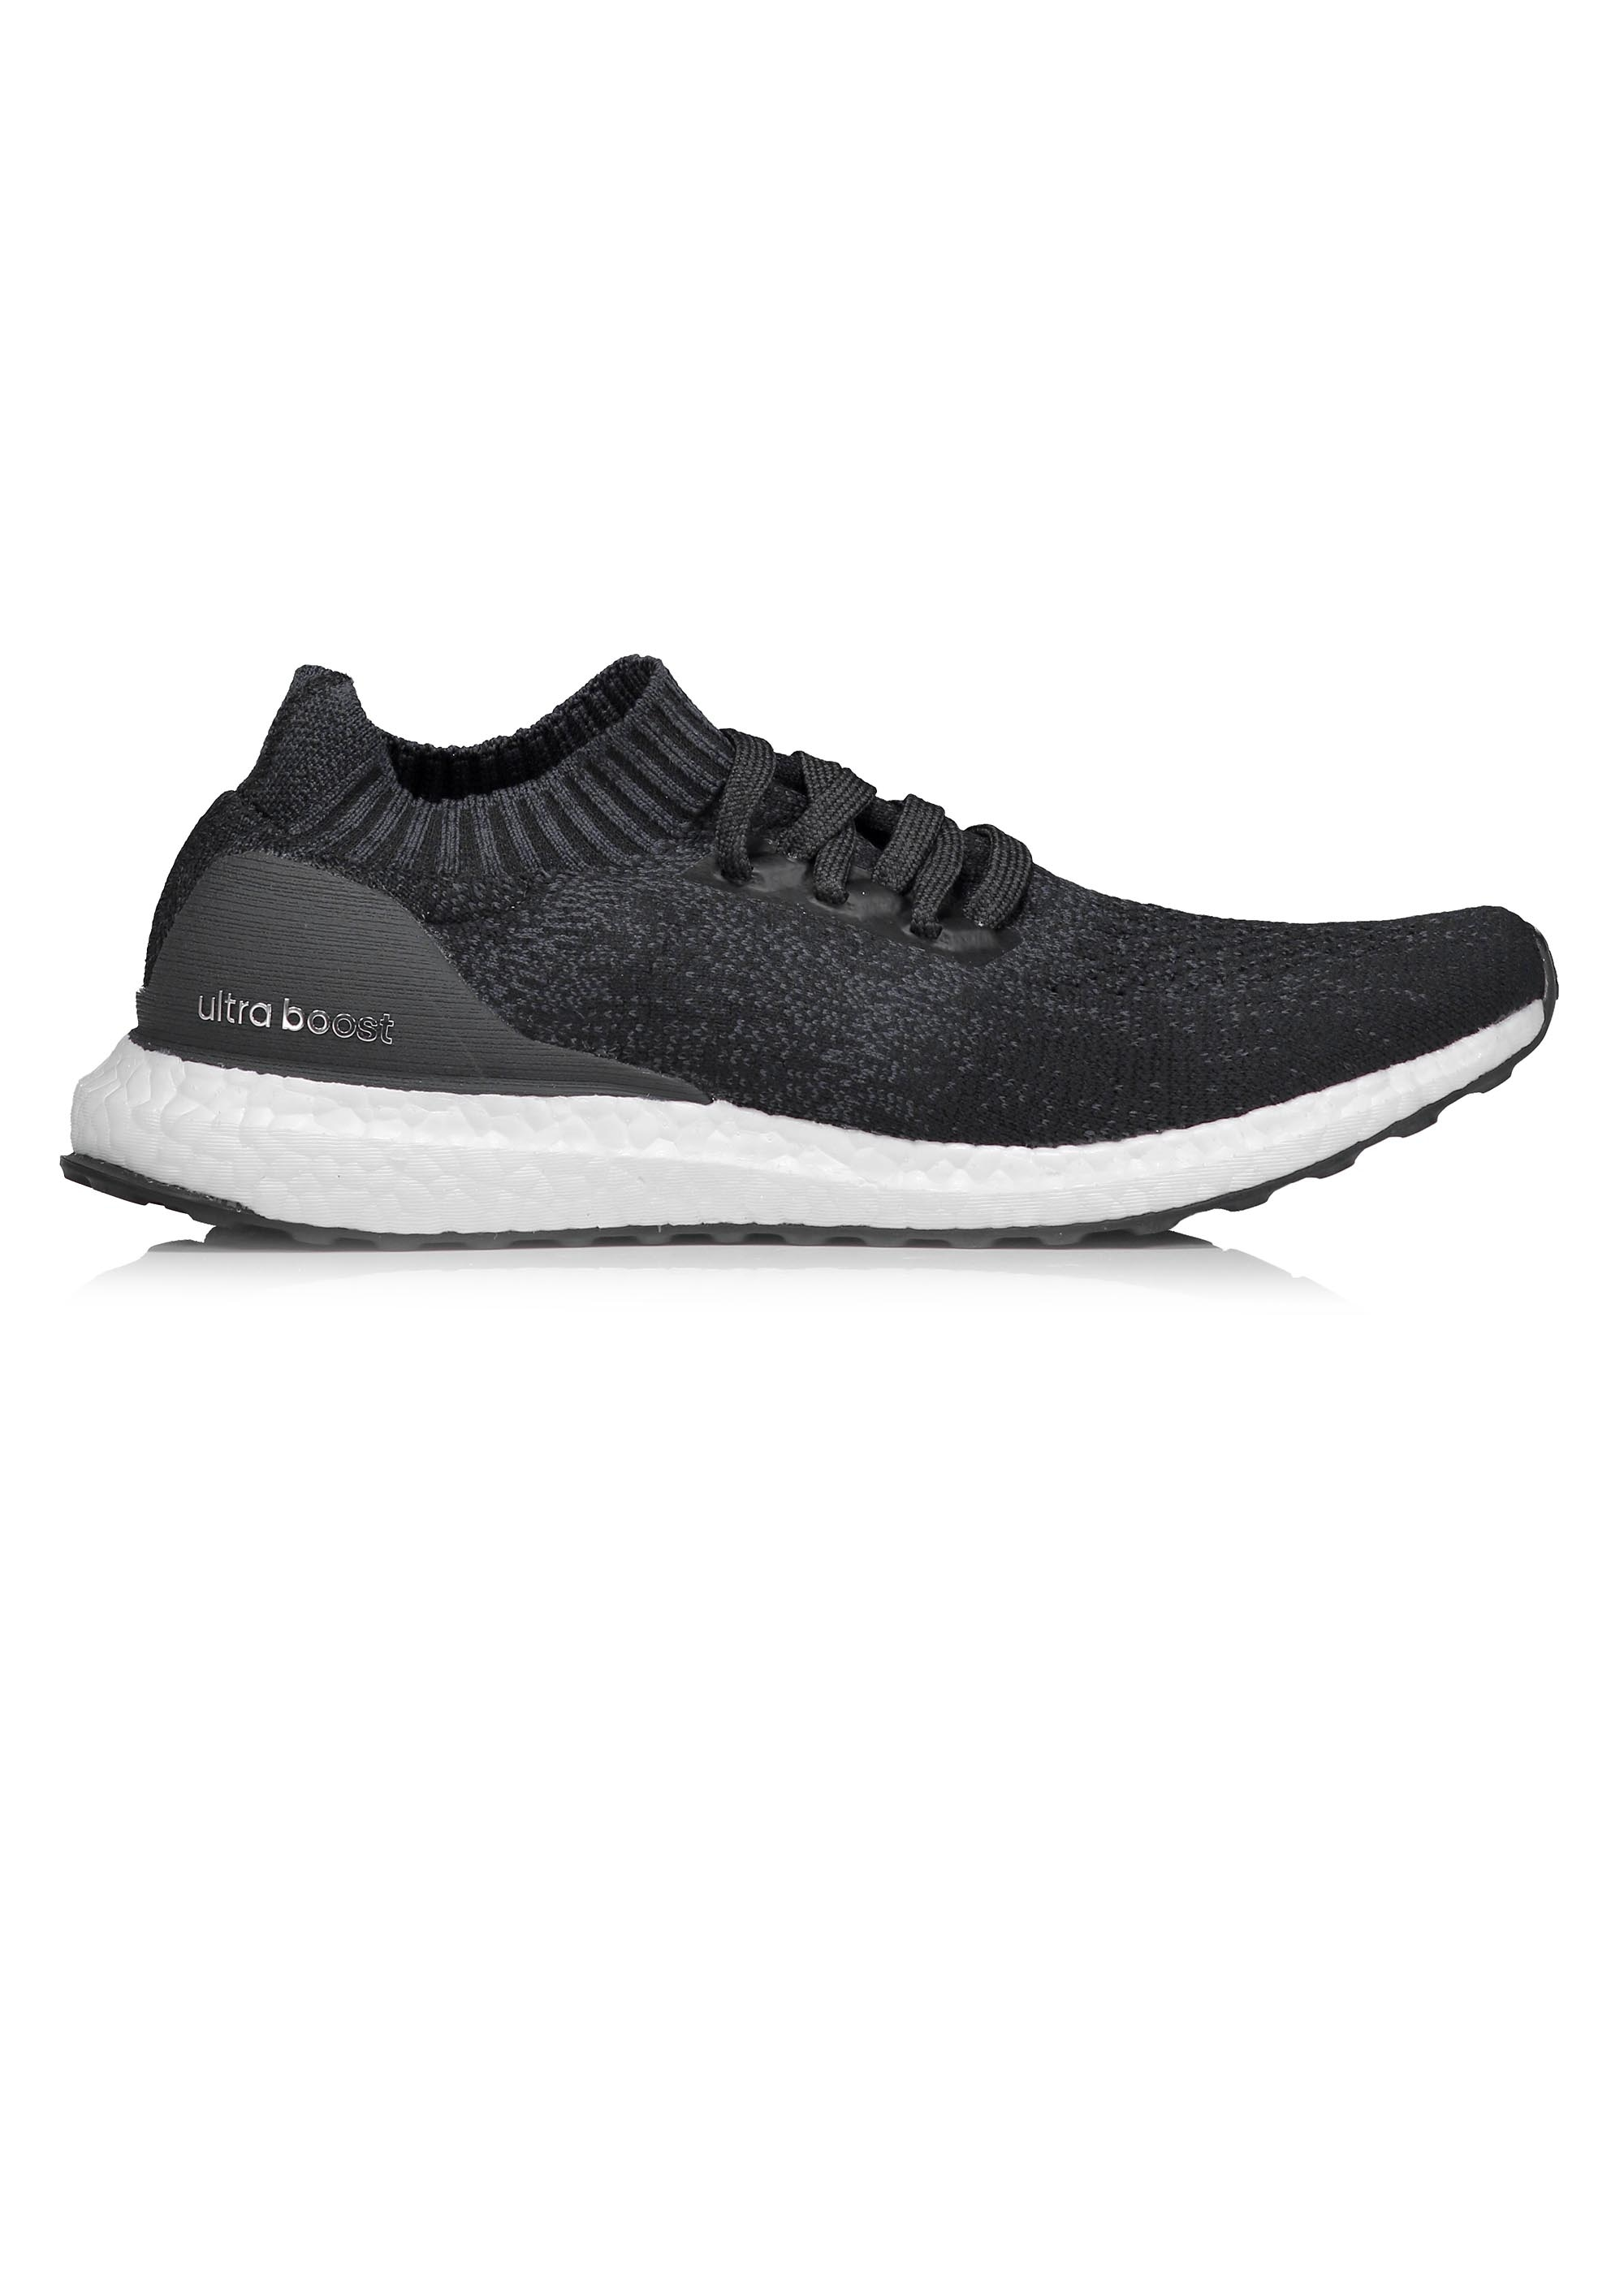 adidas originali calzature ultraboost fece uscire black triadi mens